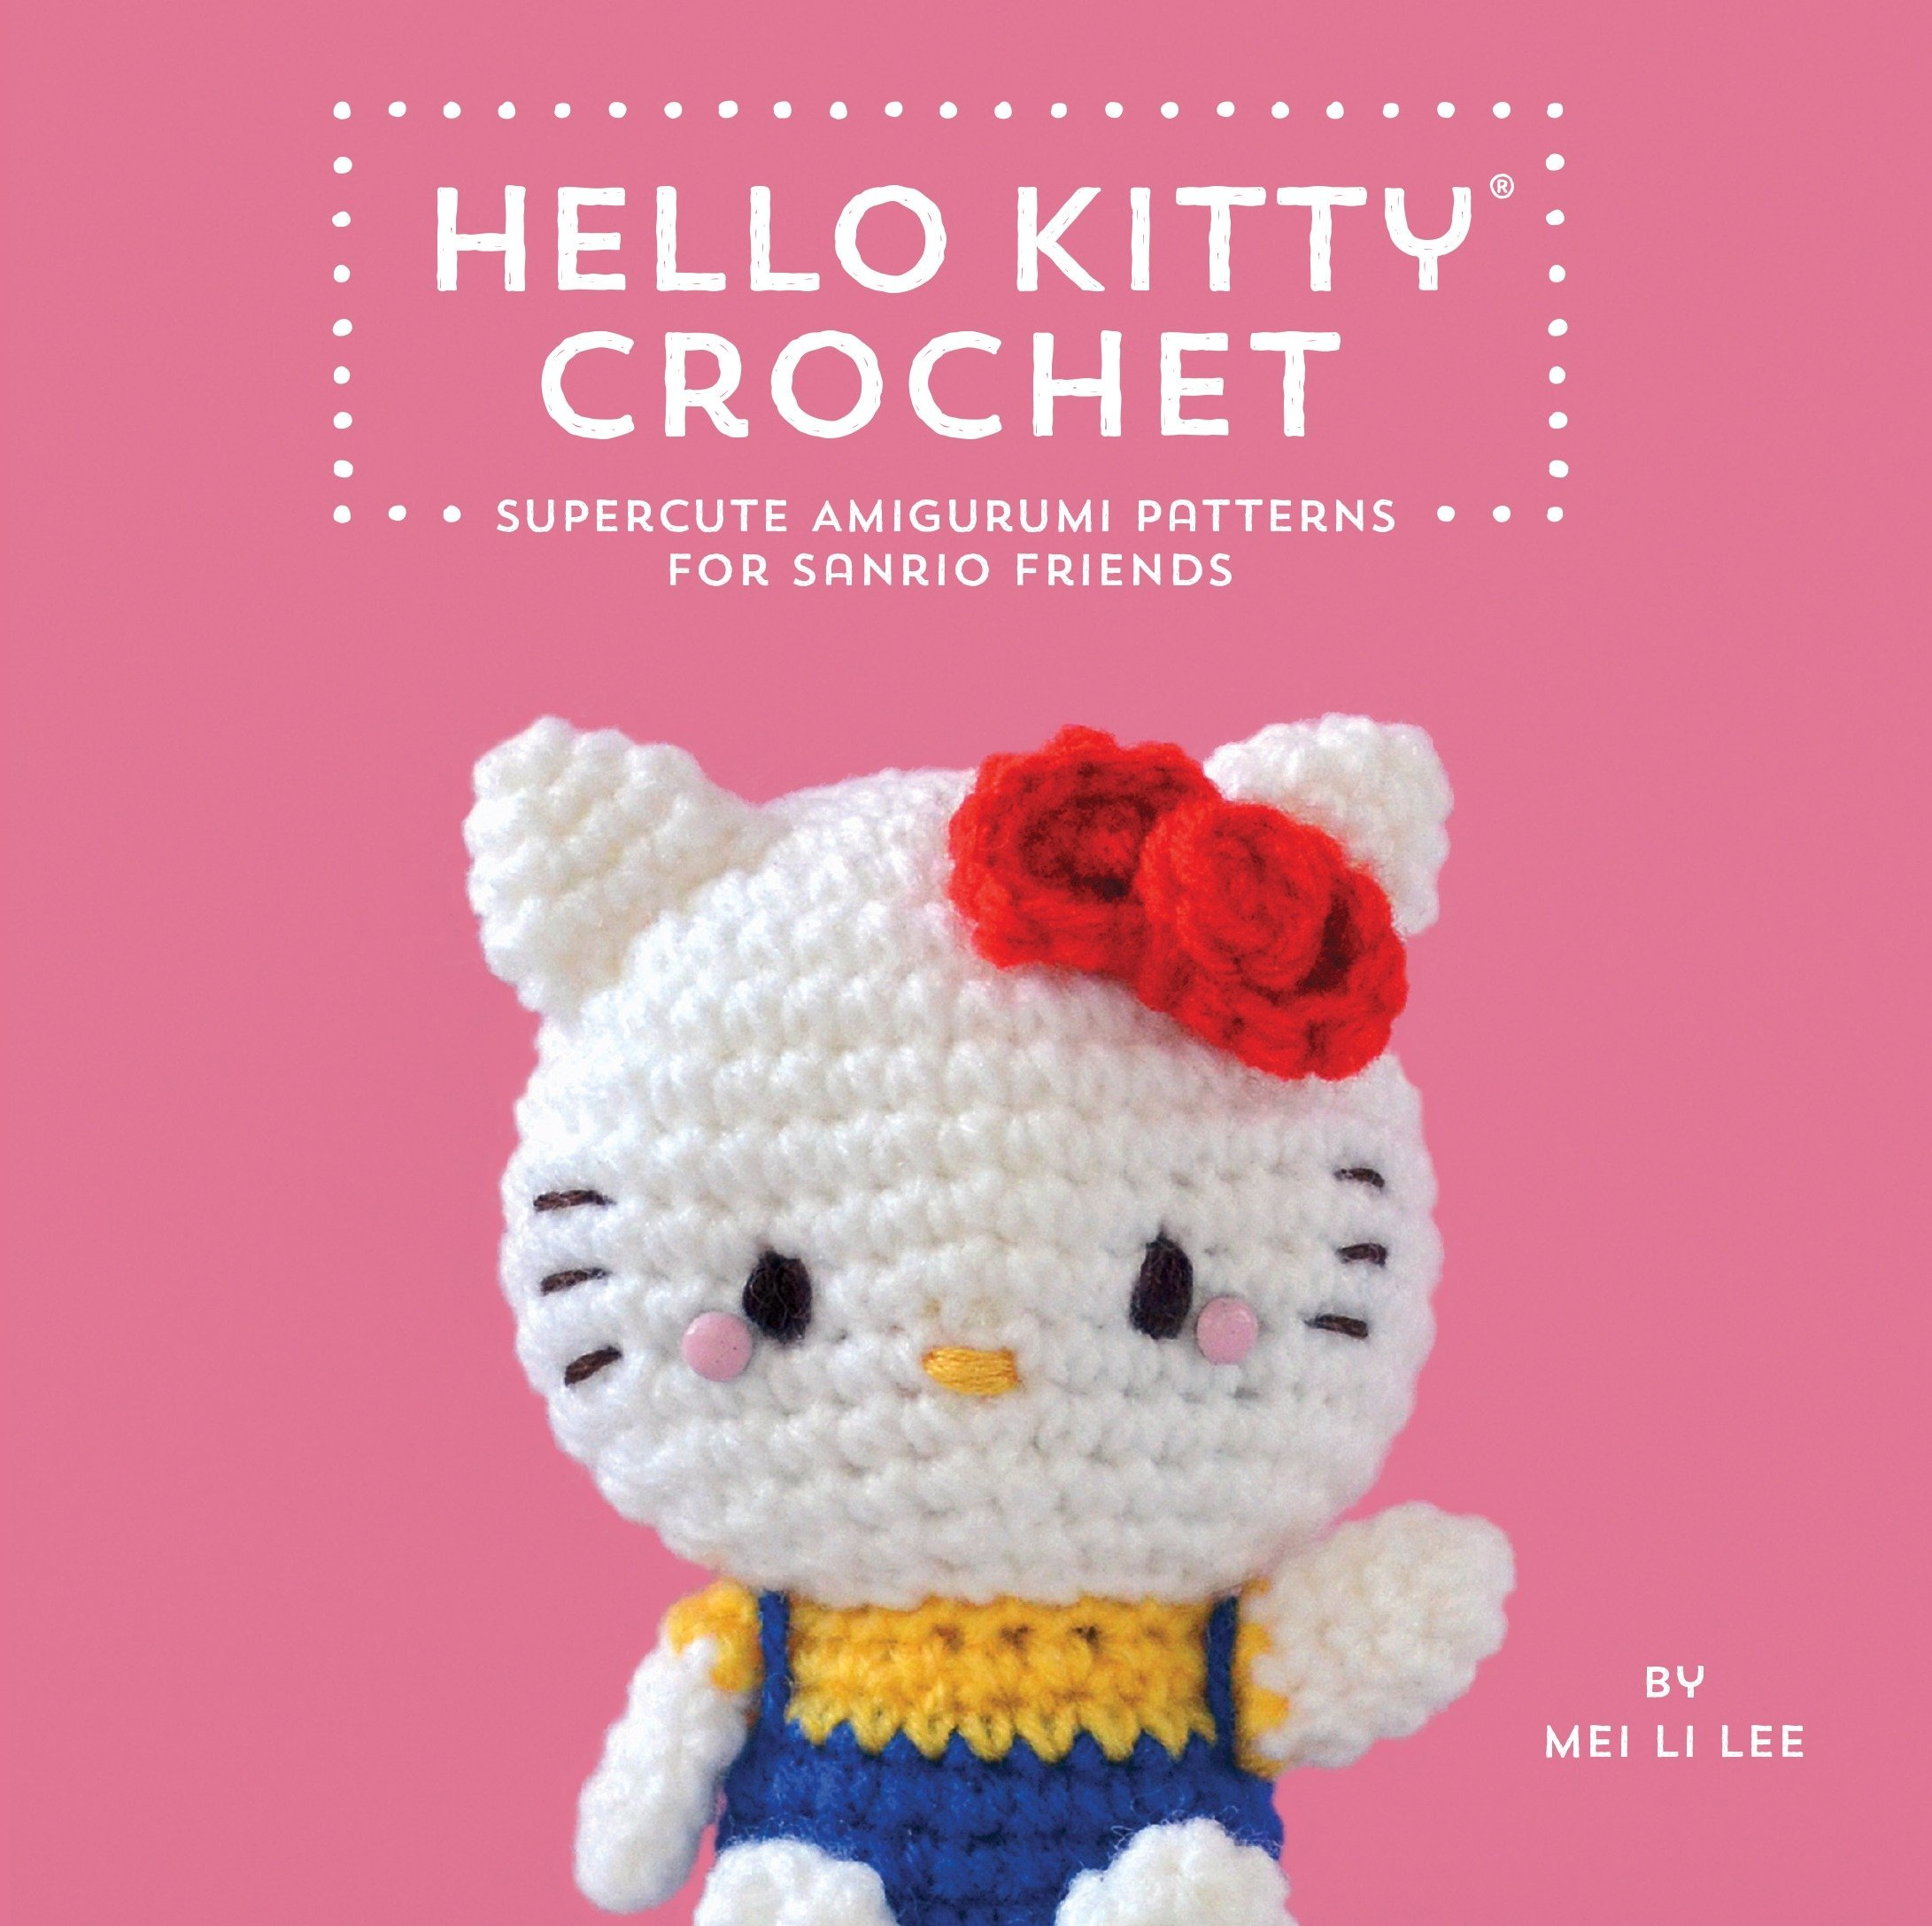 Hello Kitty Crochet: Amazon.es: Mei Li Lee: Libros en idiomas ...